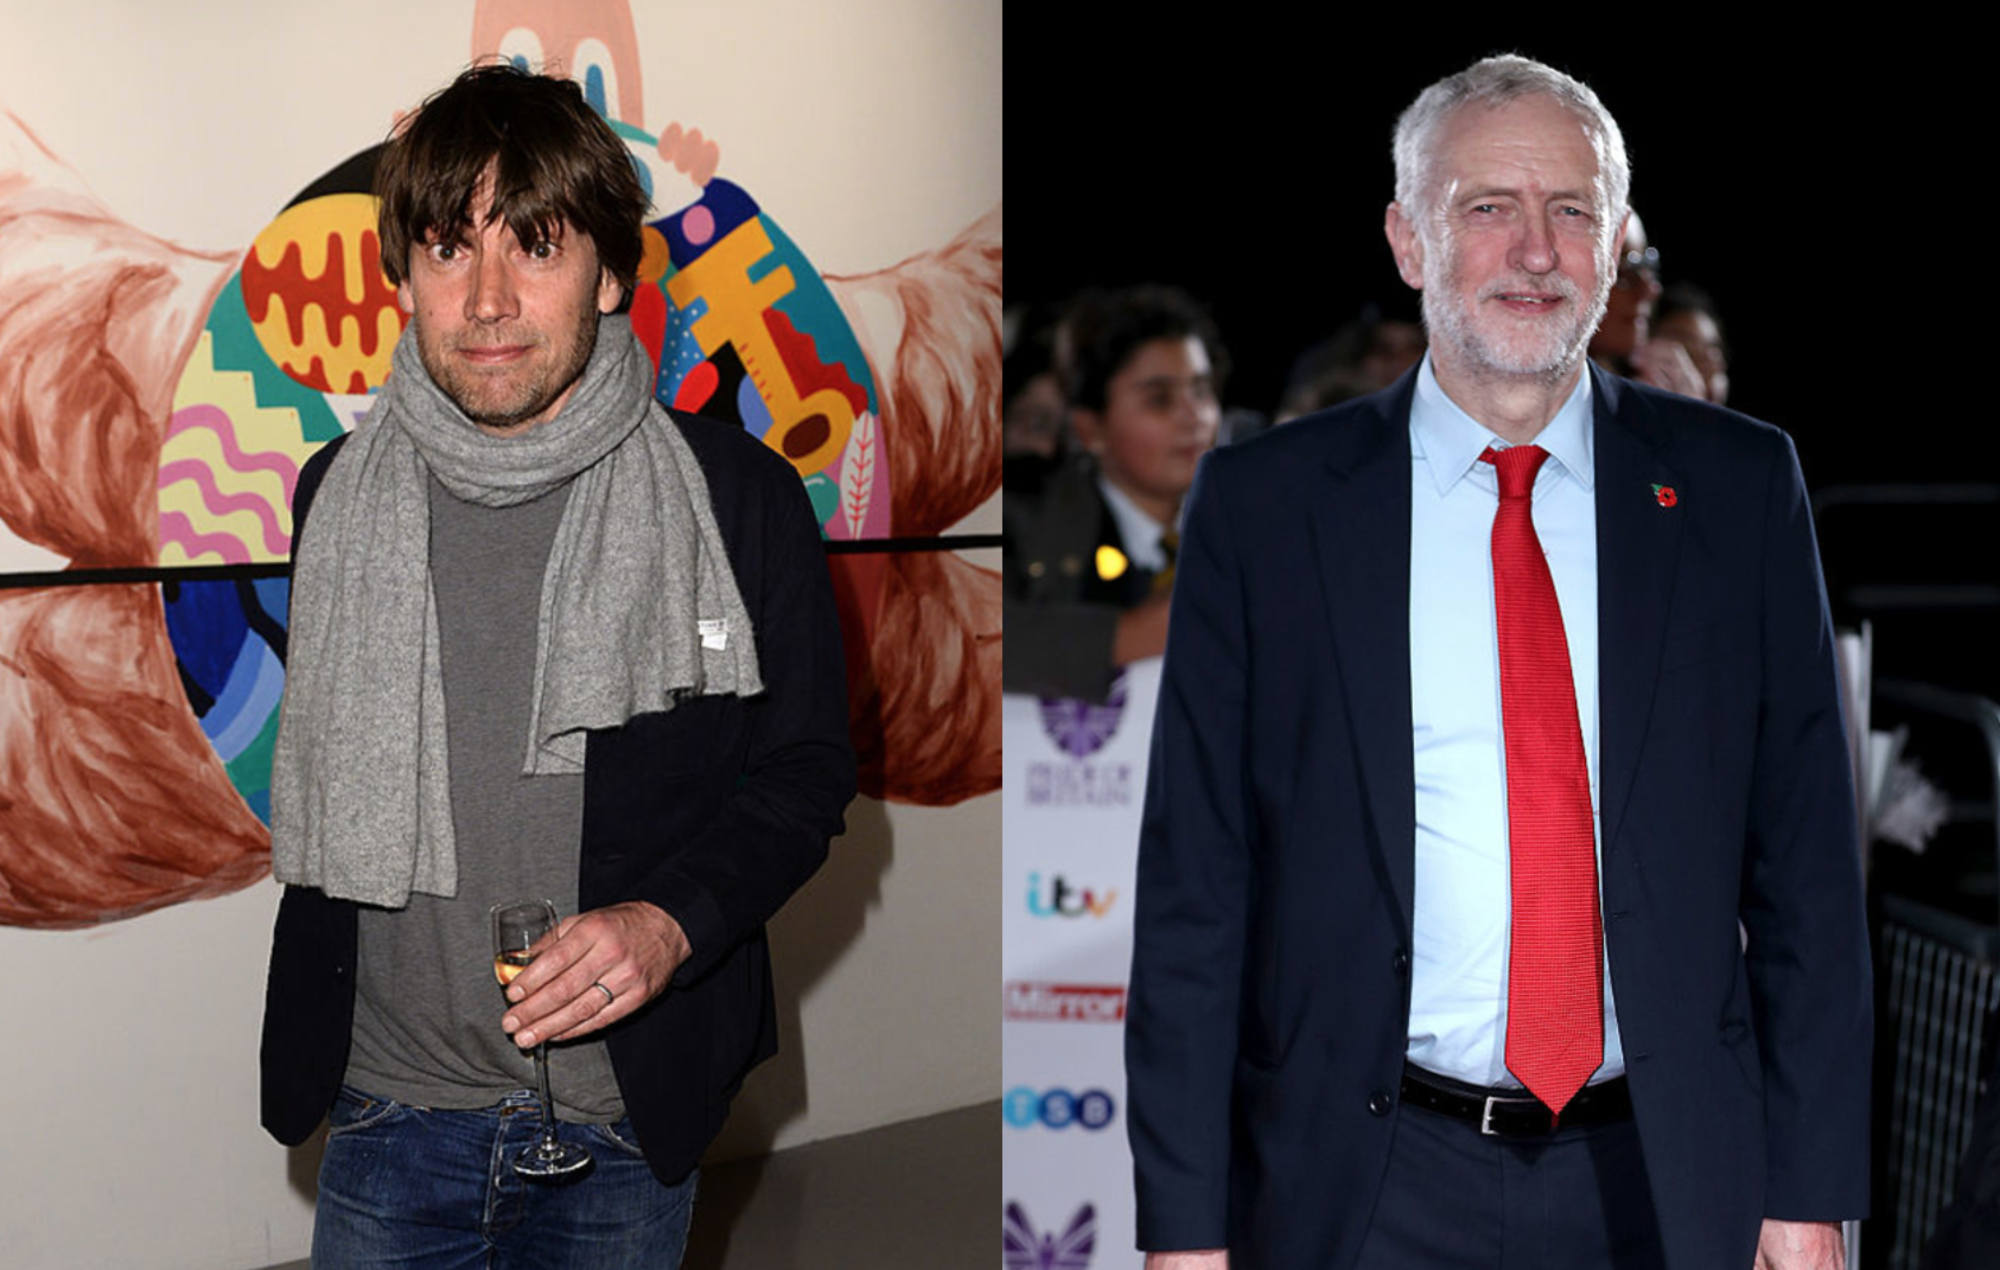 Blur's Alex James can't bring himself to vote for Jeremy Corbyn so Twitter reacts